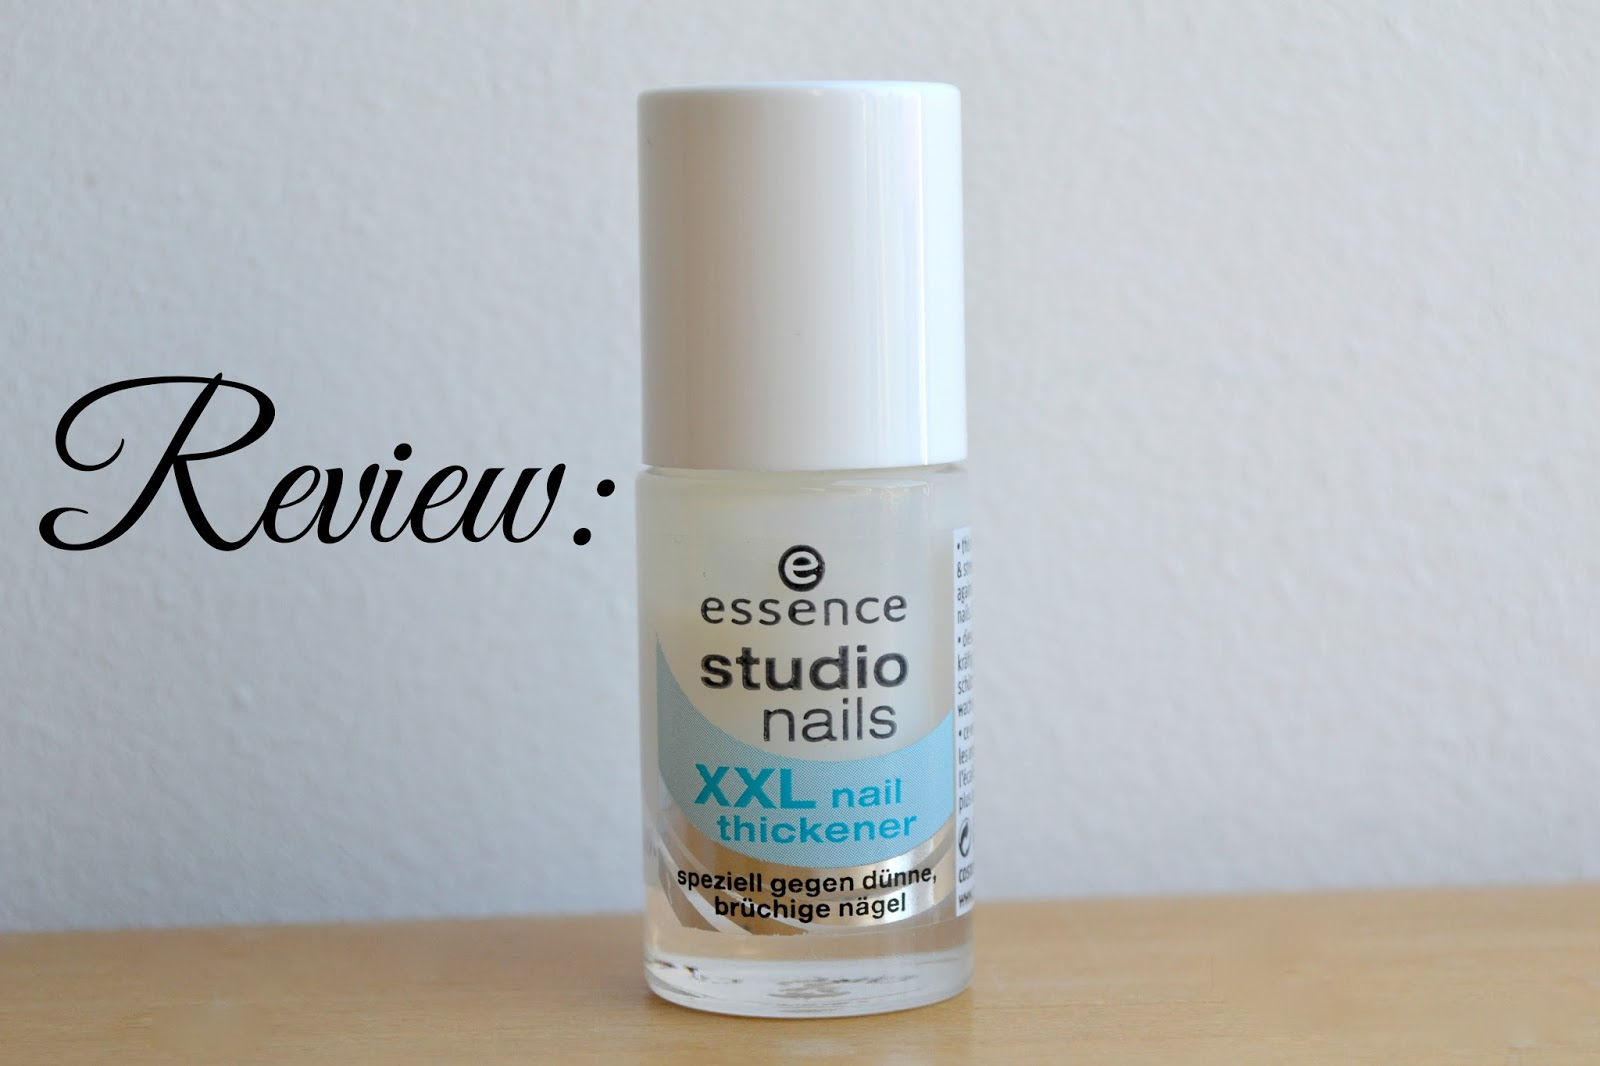 Imogen's Typewriter.: Beauty Review: Essence Studio Nails ...